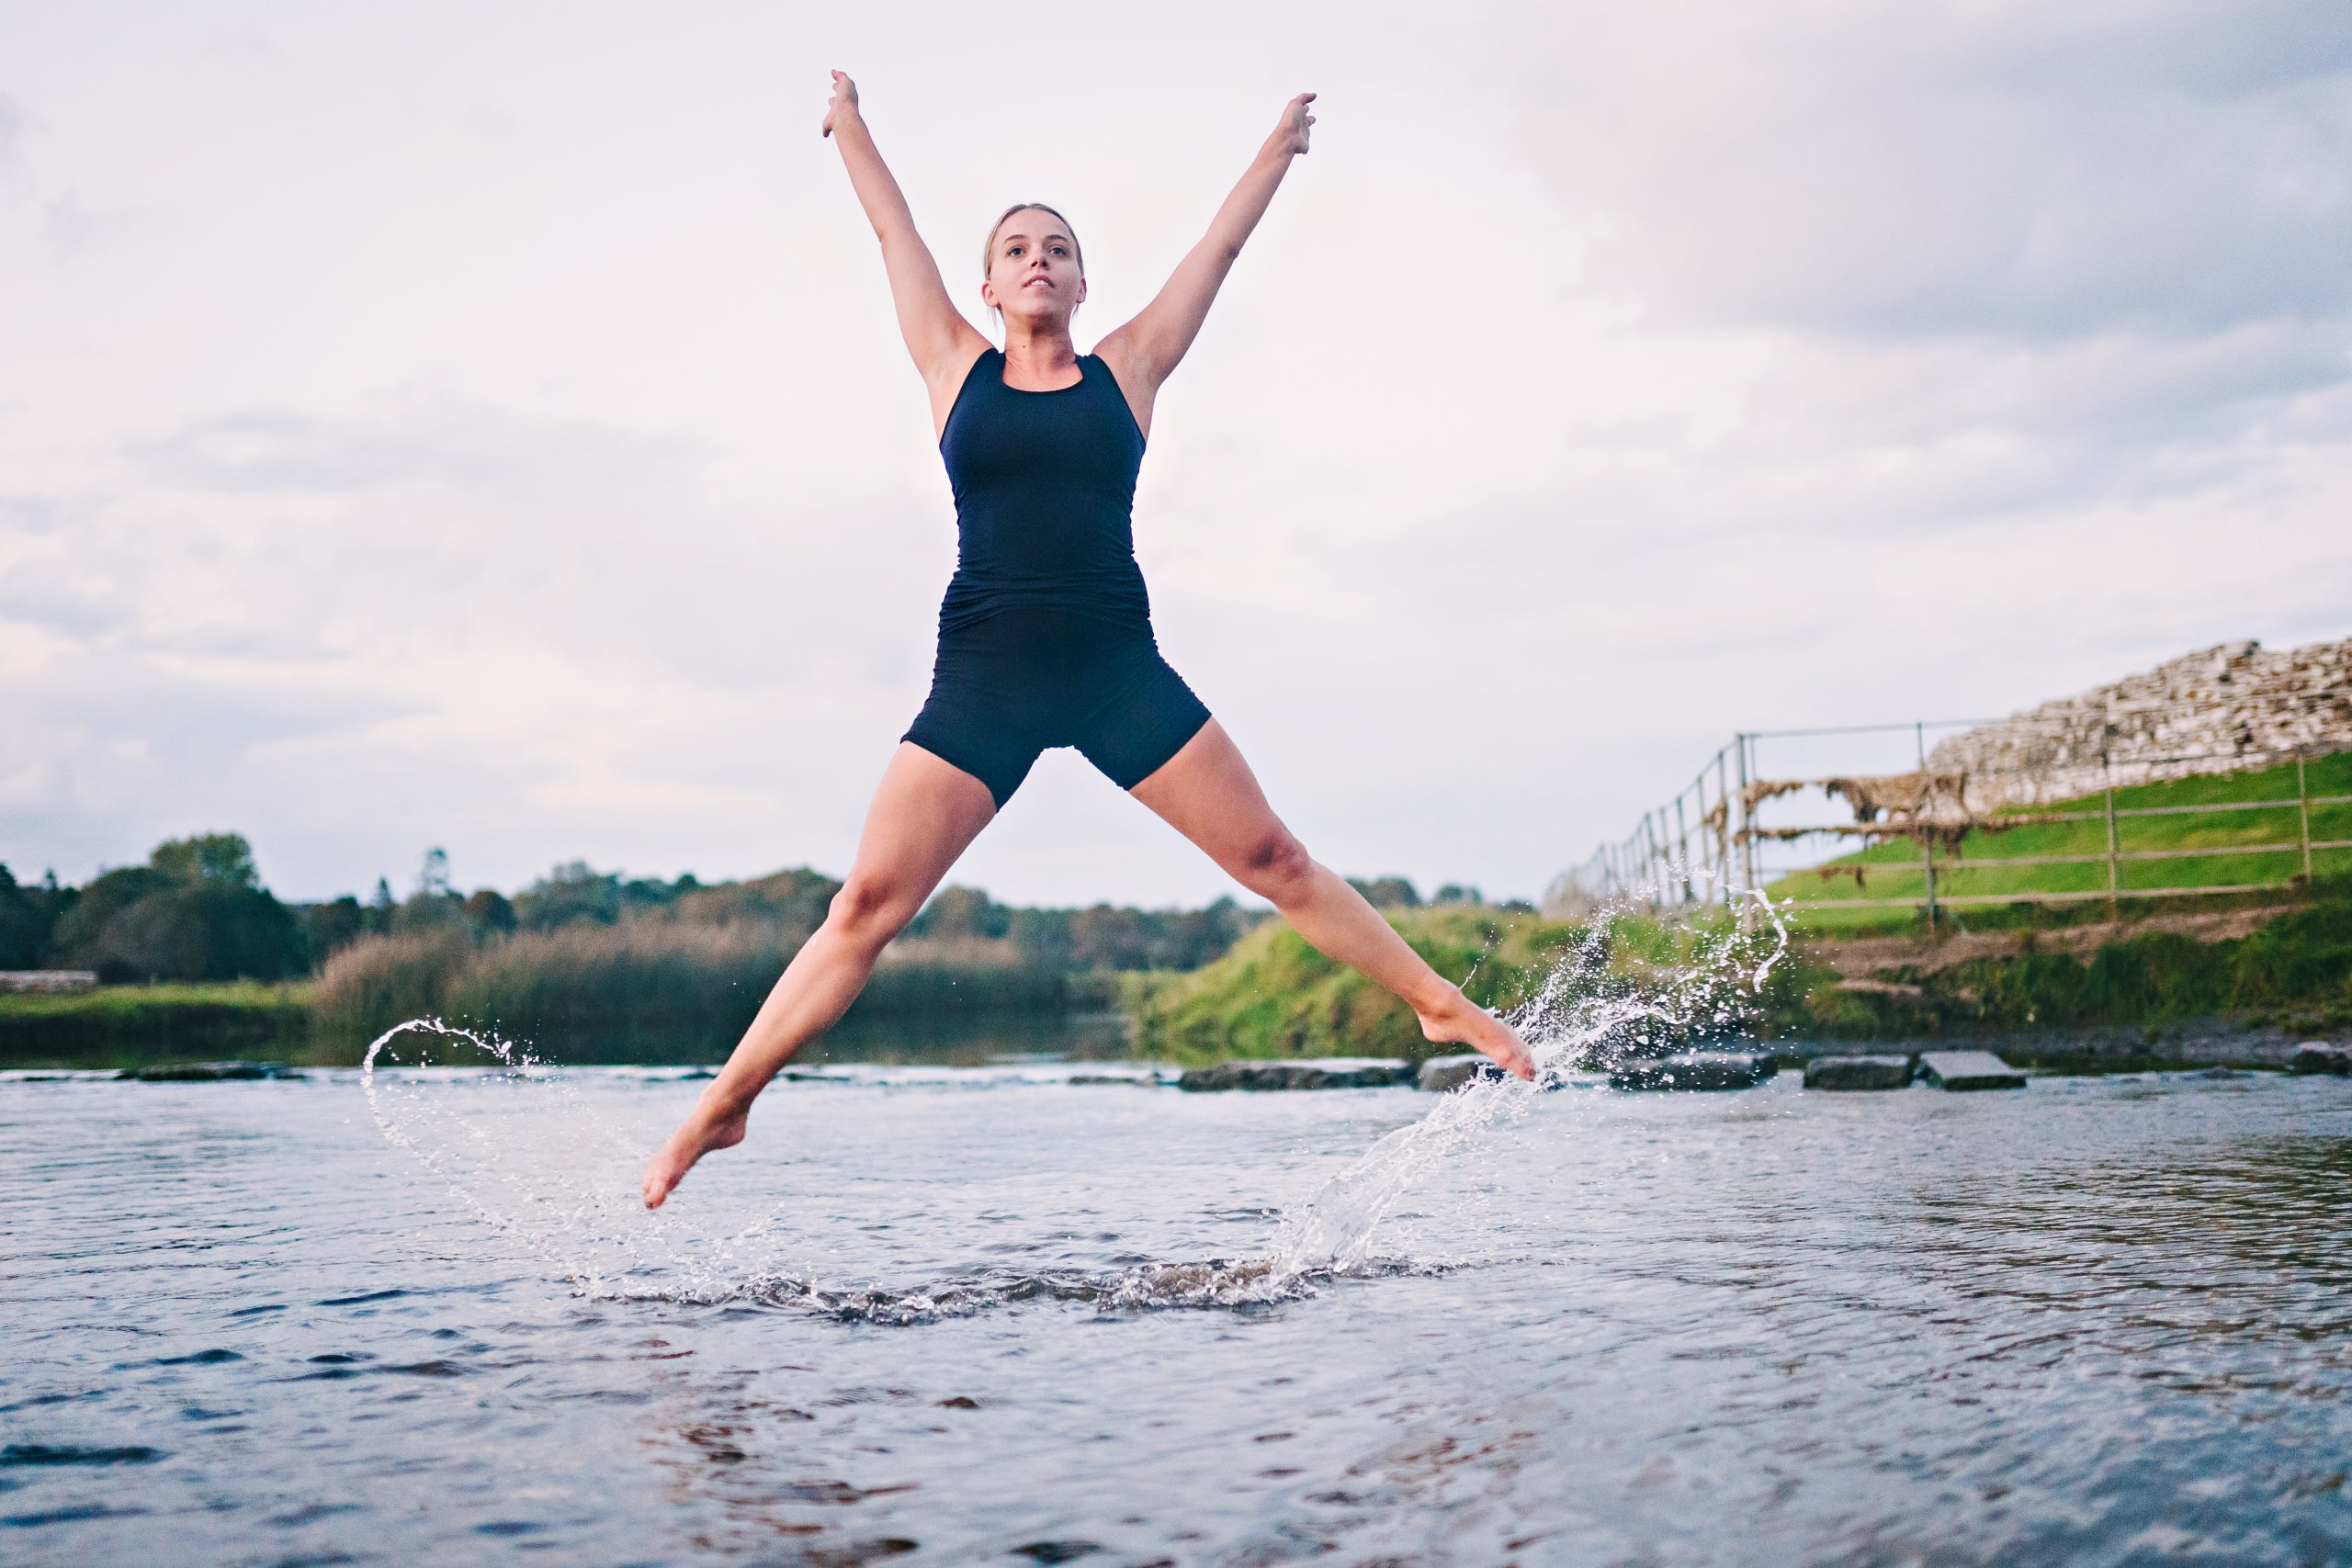 ballet dancer jumping in a river